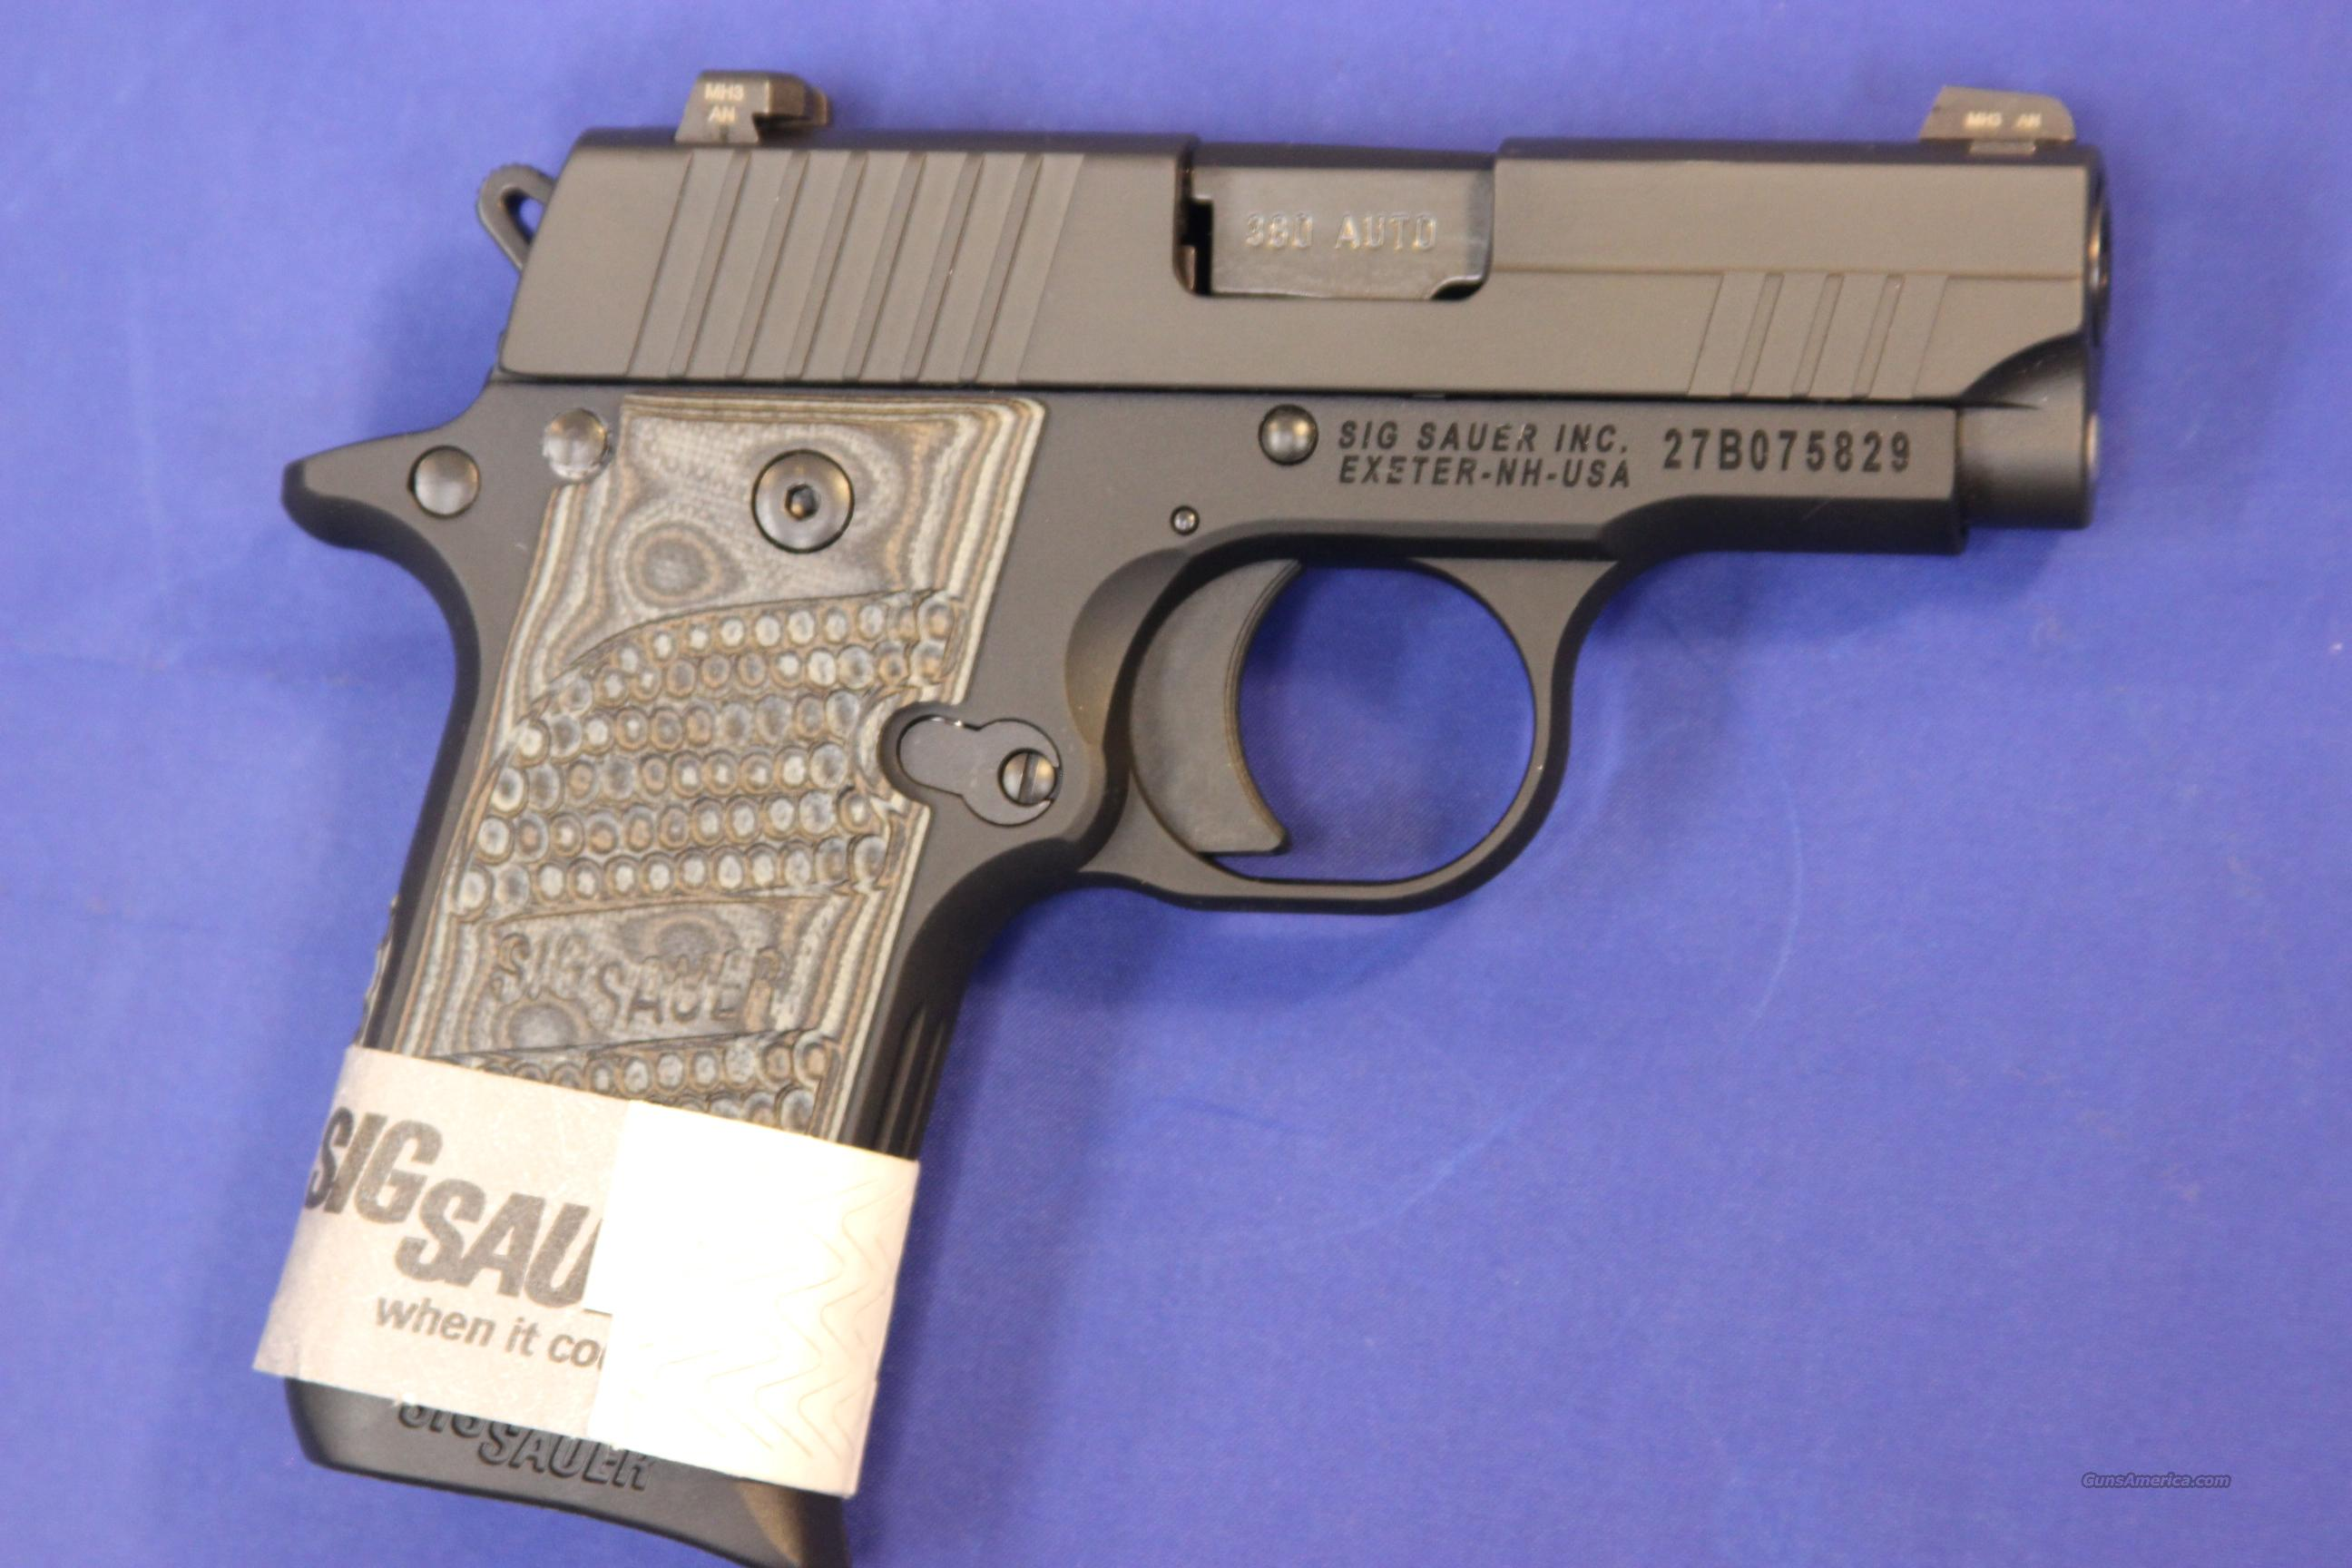 SIG SAUER P238 .380 ACP EXTREME BLACK/GREY - NEW!  Guns > Pistols > Sig - Sauer/Sigarms Pistols > P238